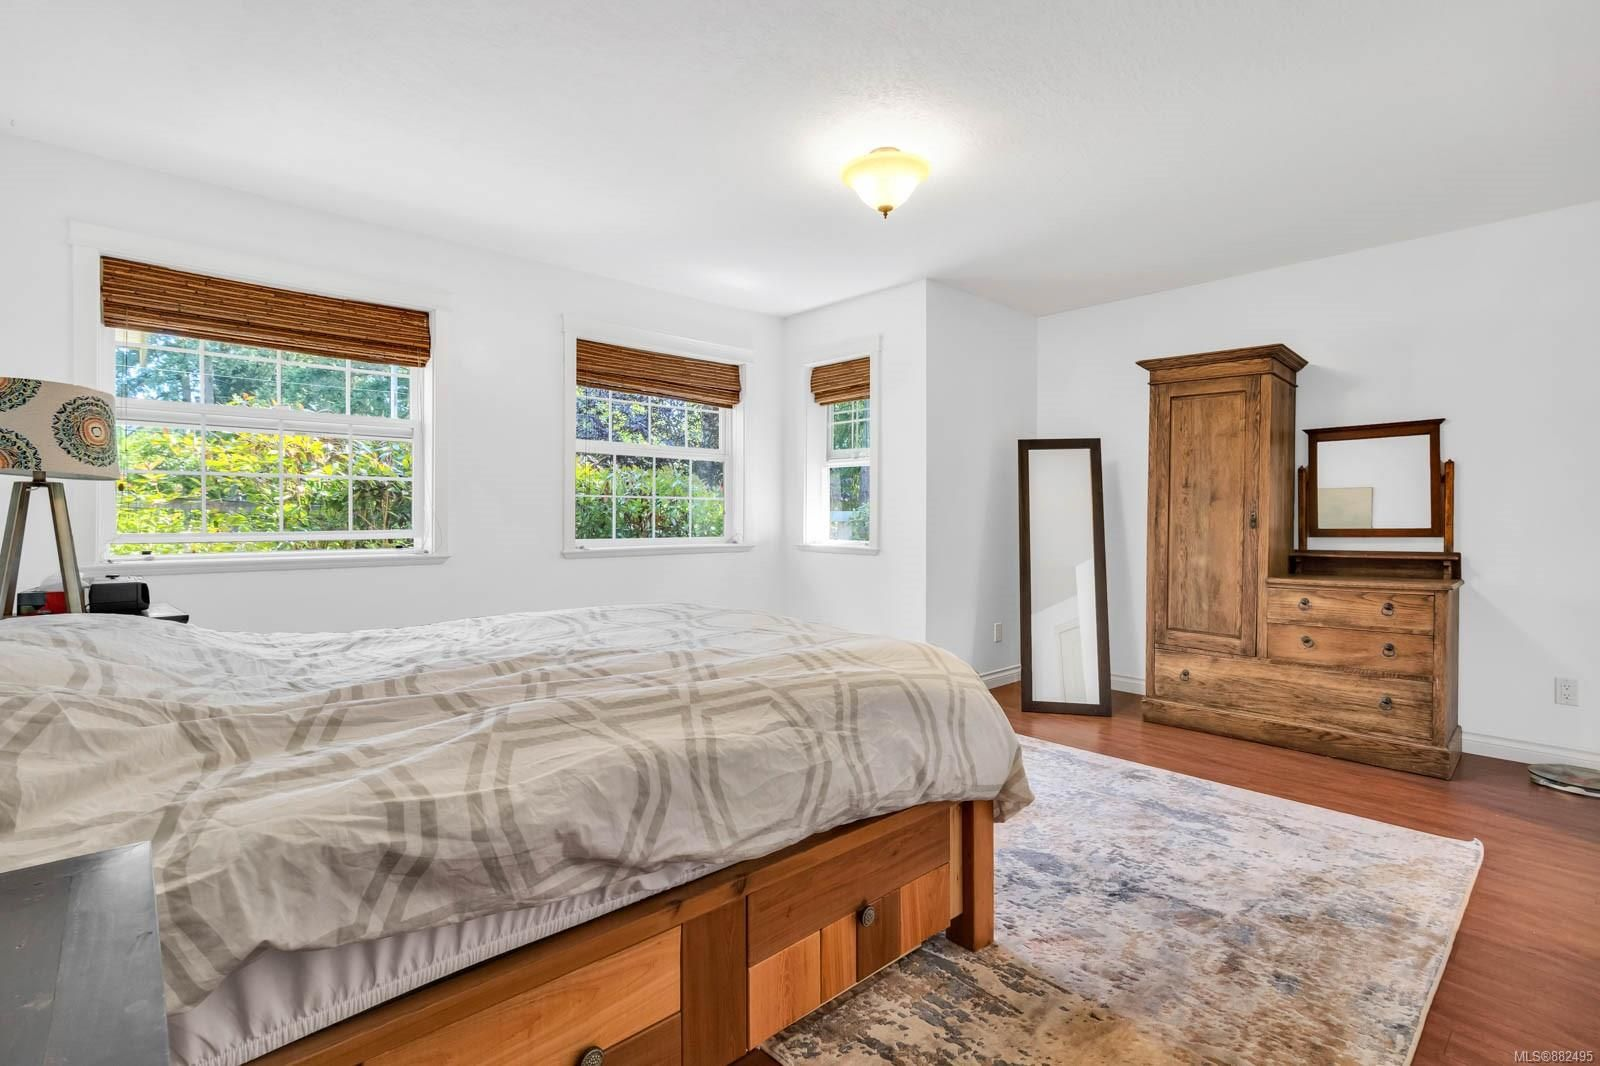 Photo 17: Photos: 375 Butchers Rd in : CV Comox (Town of) House for sale (Comox Valley)  : MLS®# 882495